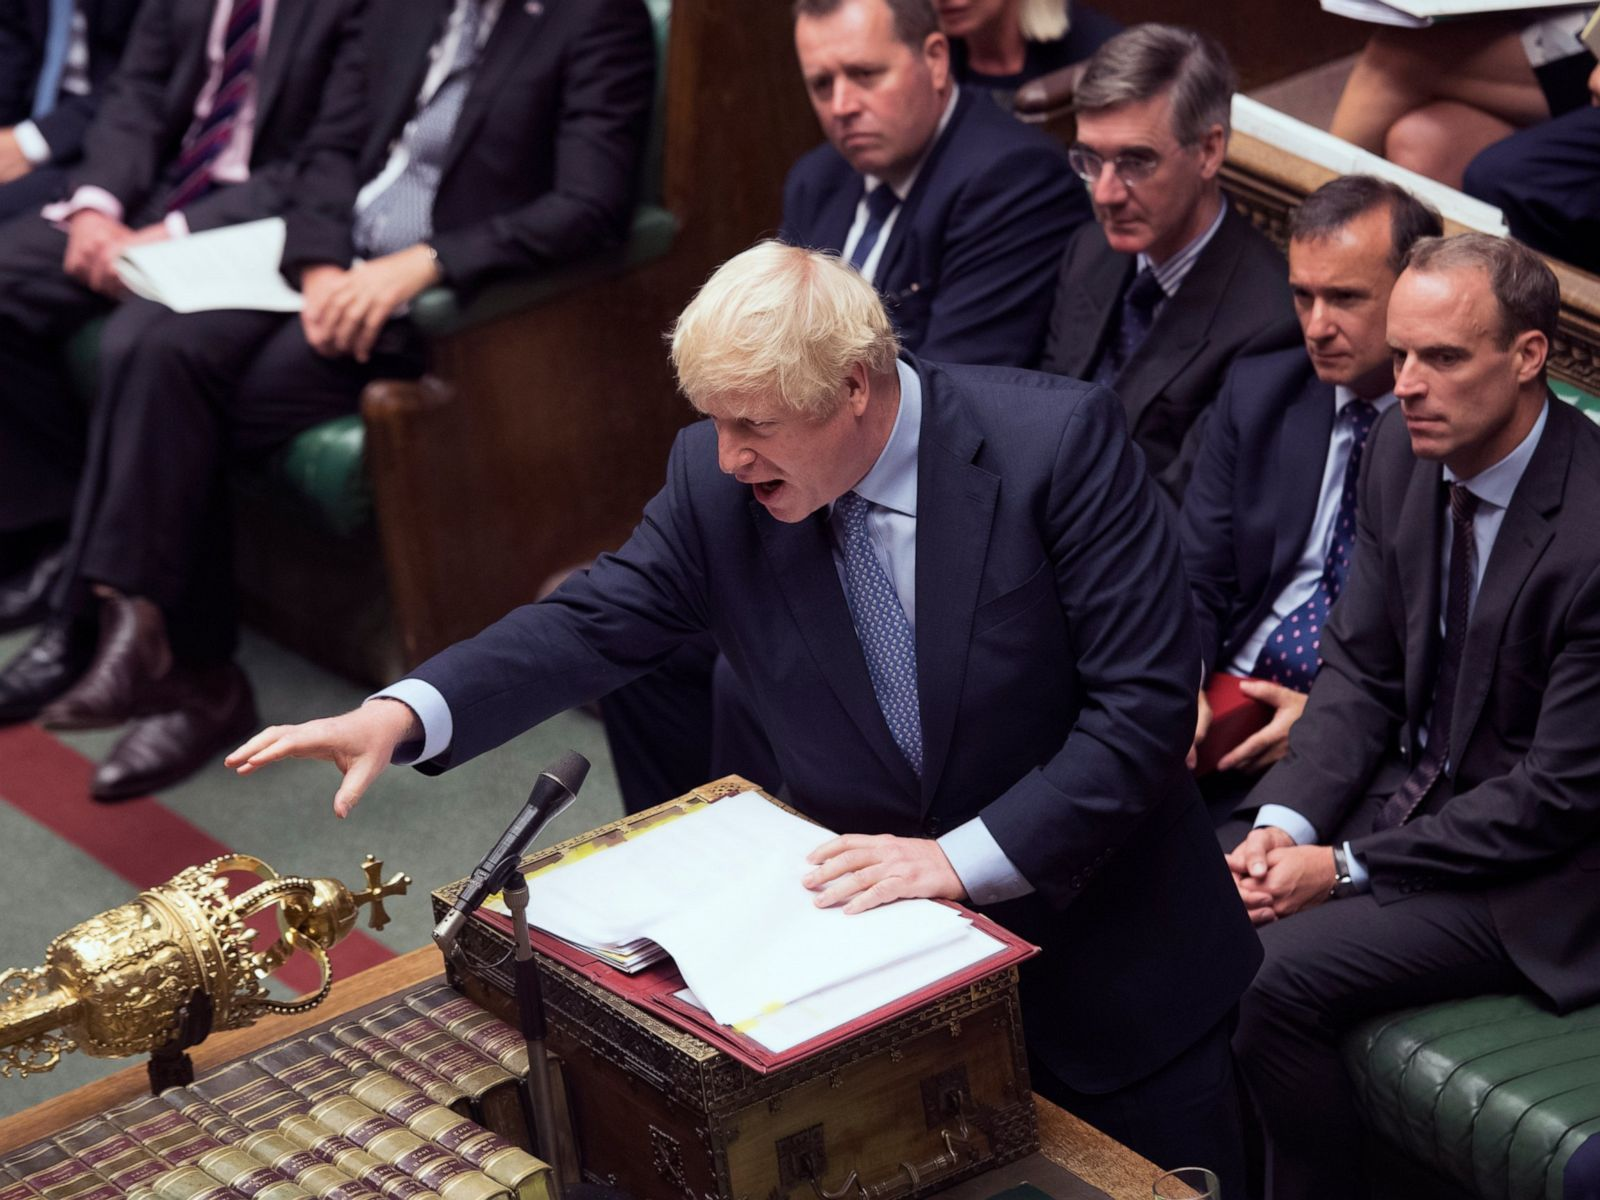 PM Johnson defeated: parliament reject early election and